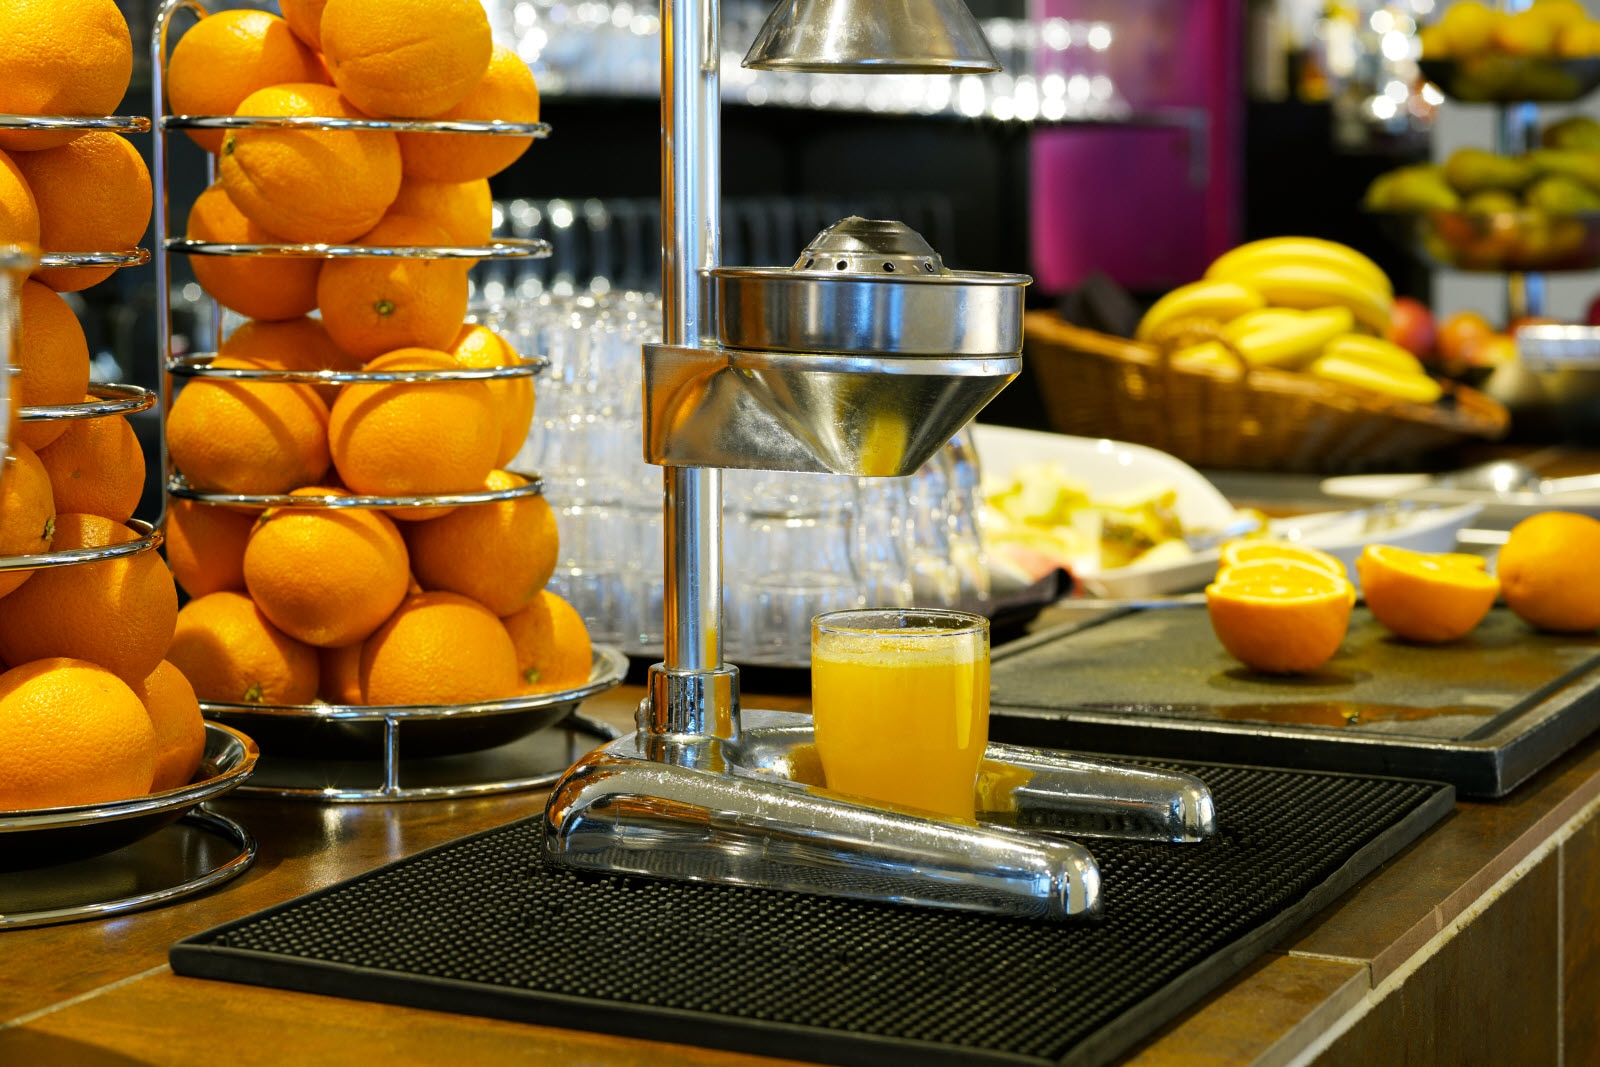 Juicer at breakfast